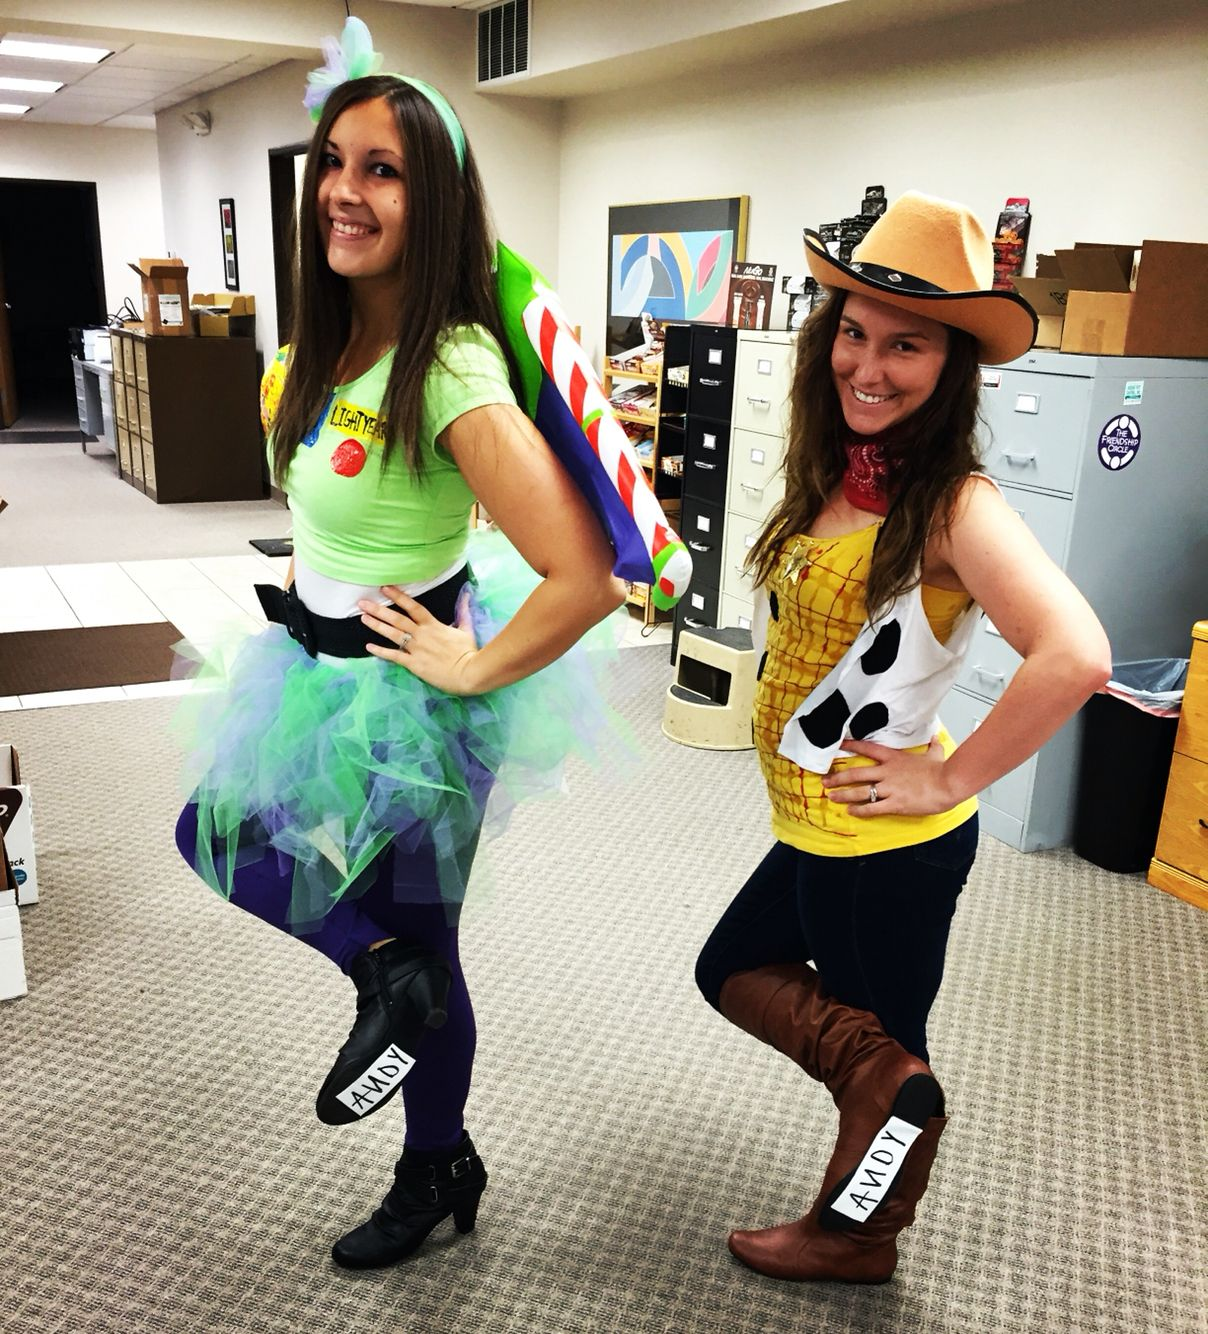 buzz lightyear and woody toy story woman women adult Halloween costume diy best friend creative  sc 1 st  Pinterest & buzz lightyear and woody toy story woman women adult Halloween ...